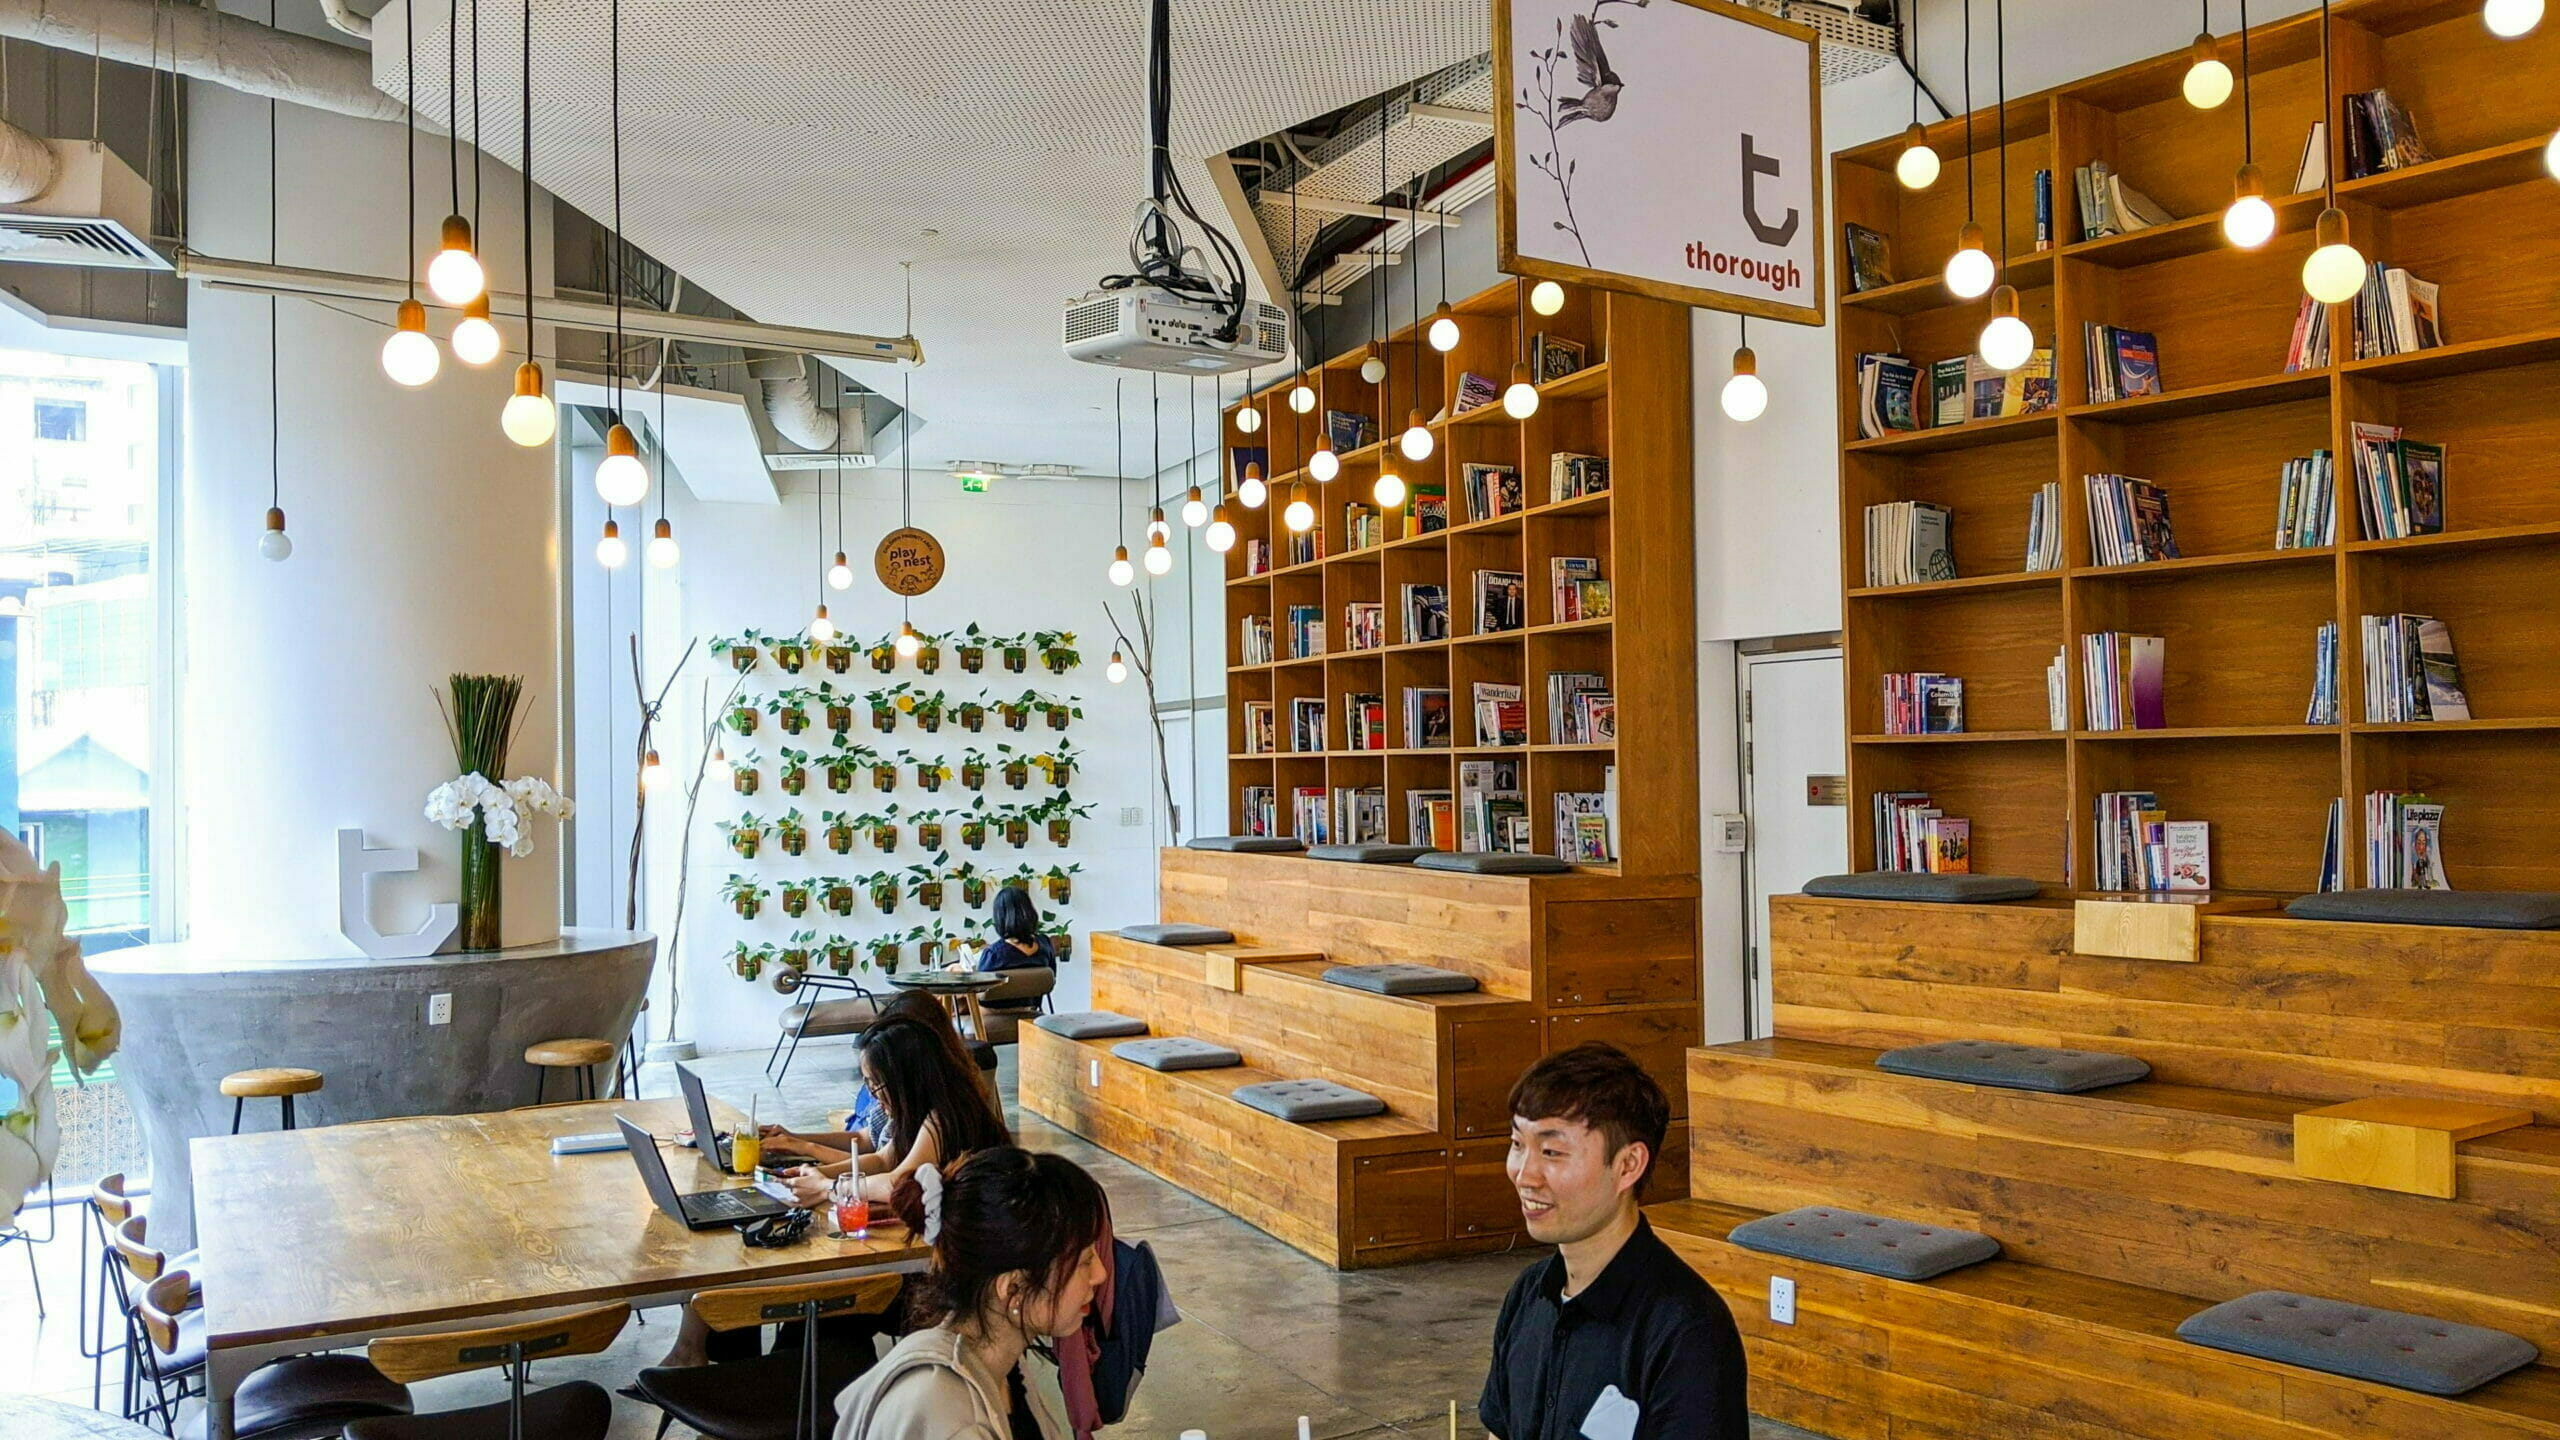 Nest by AIA:店内